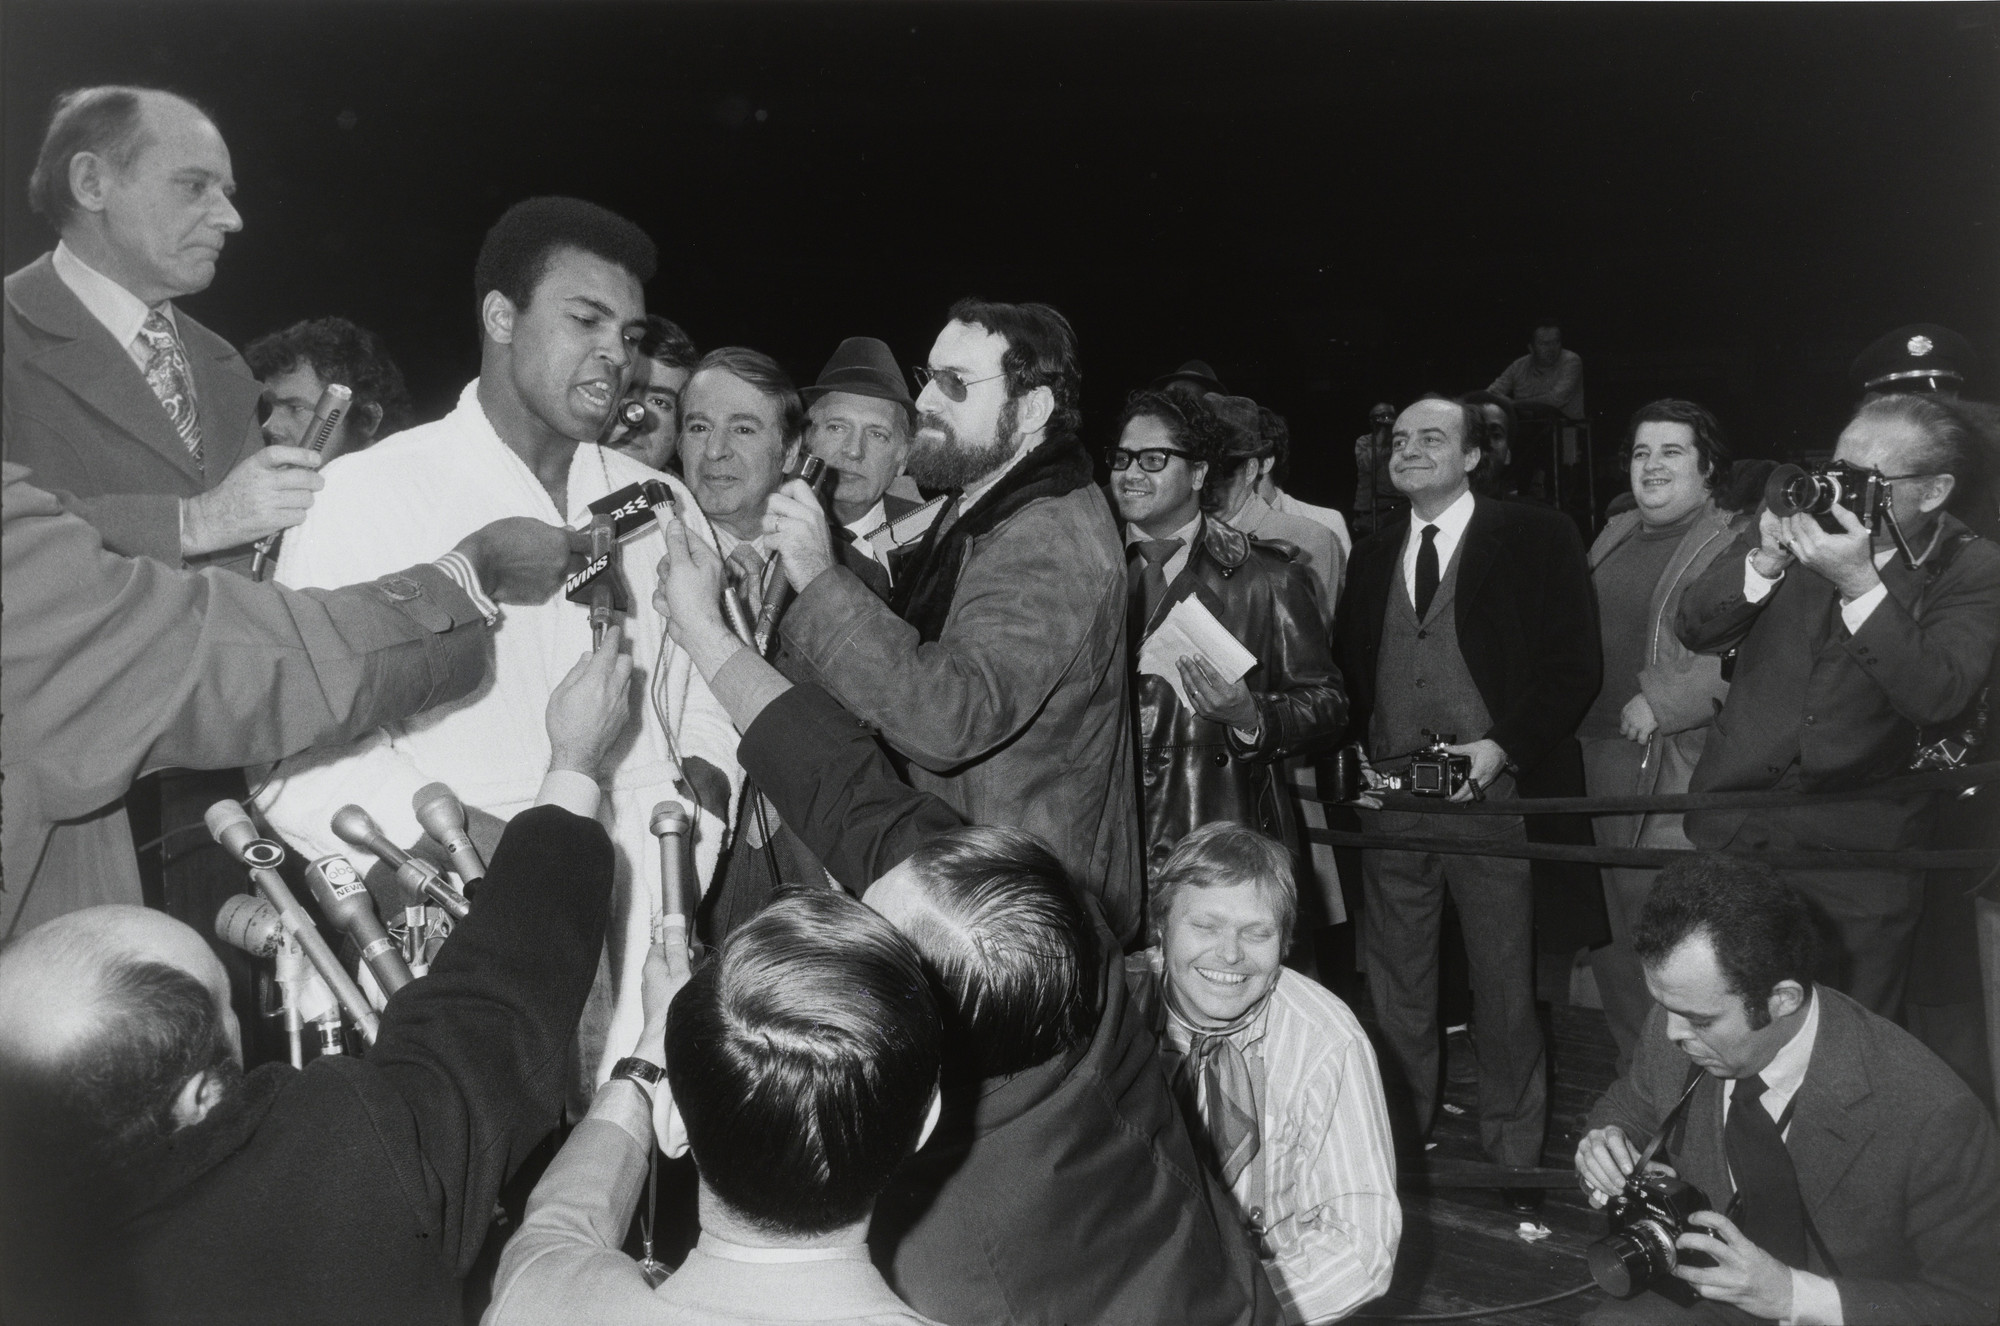 Garry Winogrand. Muhammad Ali and Oscar Bonavena, Press Conference, New York City from the portfolio Big Shots. 1970